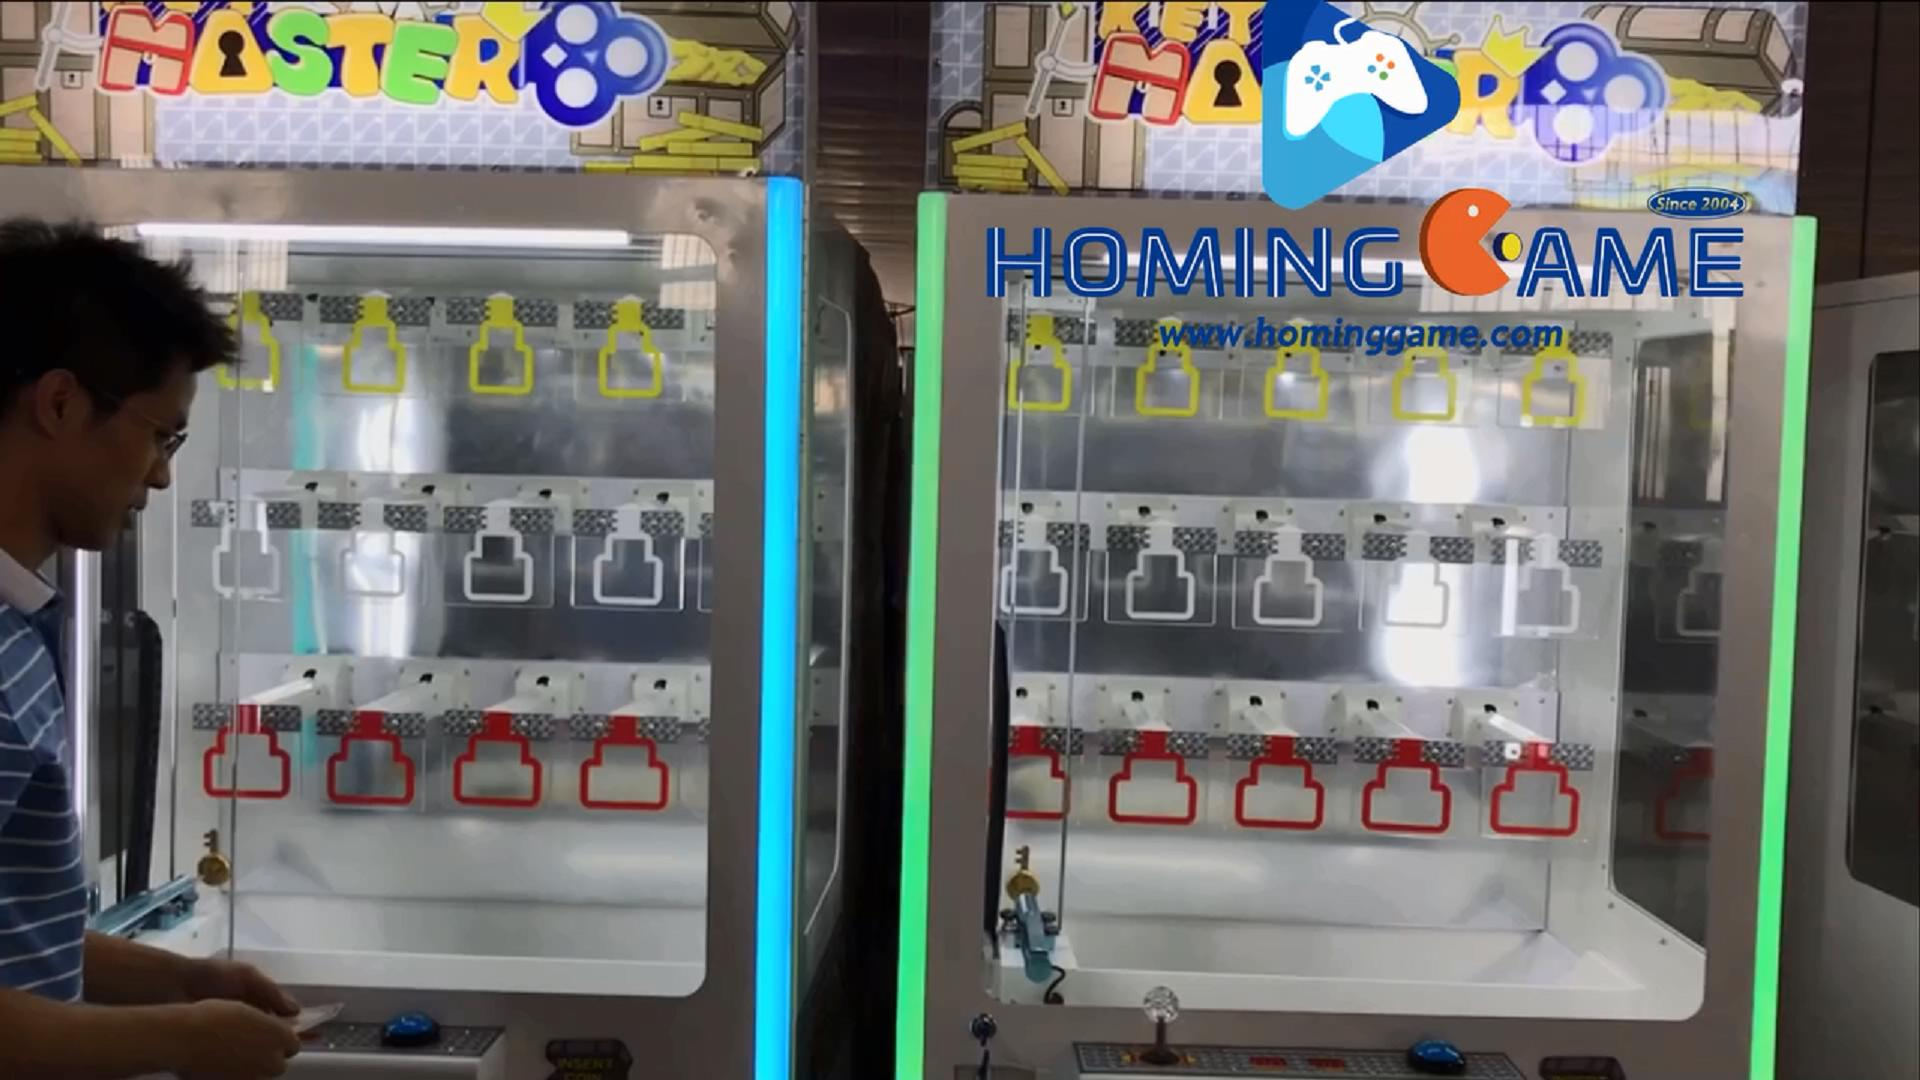 key master,key master arcade game machine,key master prize game machine,key master prize redemption game machine,coin operated key master arcade game machine,game machine,arcade game machine,arcade games,coin operated game machine,coin-op game machine,amusement machine,amusment park game equipment,entertainment game machine,entertainment machine,entertainment,shopping mall prize game machine,prize vending machine,vending machine,arcade,games,crane machine,claw machine,crane claw machine,gift game machine,diy vending machine,lottery game machine,dispenser prize game machine,dispensver game machine,hominggame,www.gametube.hk,gametube.hk,indoor game machine,arcade games machine,hominggame prize game machine,barber cut prize game machine,cut string prize game machine,cut the rope prize game machine,winner cube prize game machine,icube prize game machine,stacker prize game machine,lucky star prize game machine,key point push prize game machine,key push prize game machine,push a win prize game machine,bulldozer prize game machine,prize games,redemption game machine,prize redemption game mahcine,prize machine